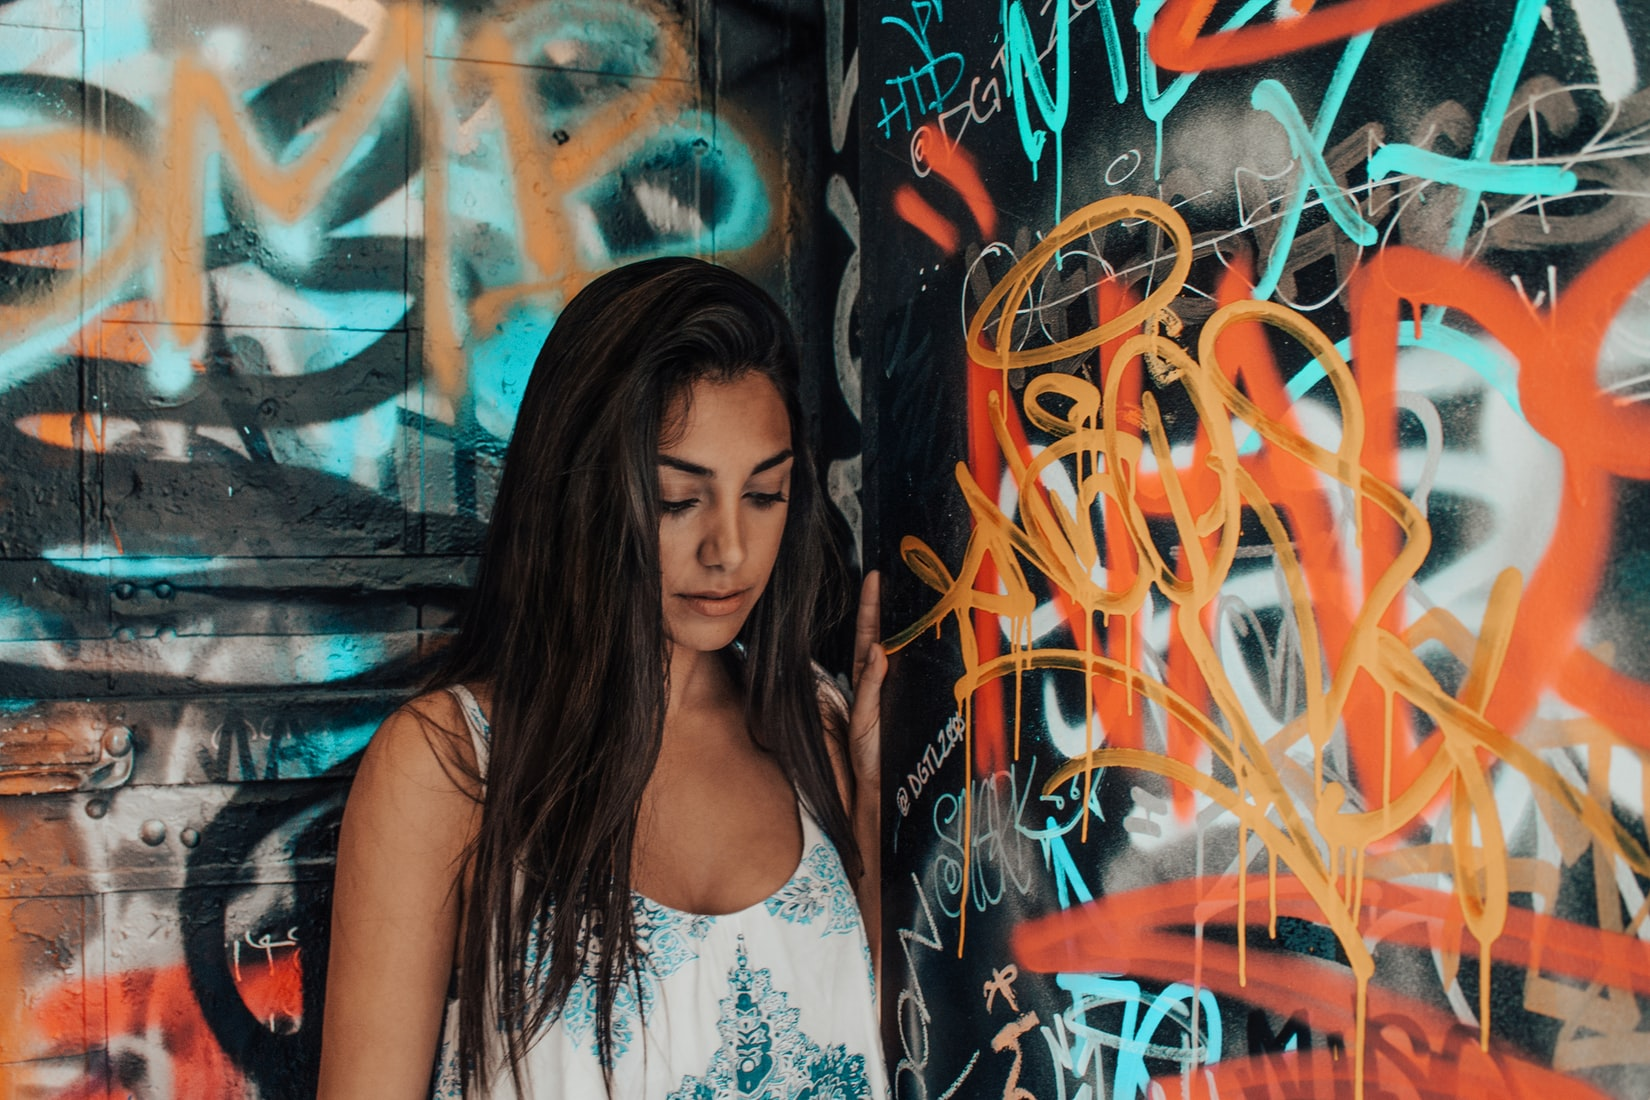 Young brunette woman experiencing negative thoughts while standing next to graffiti wall